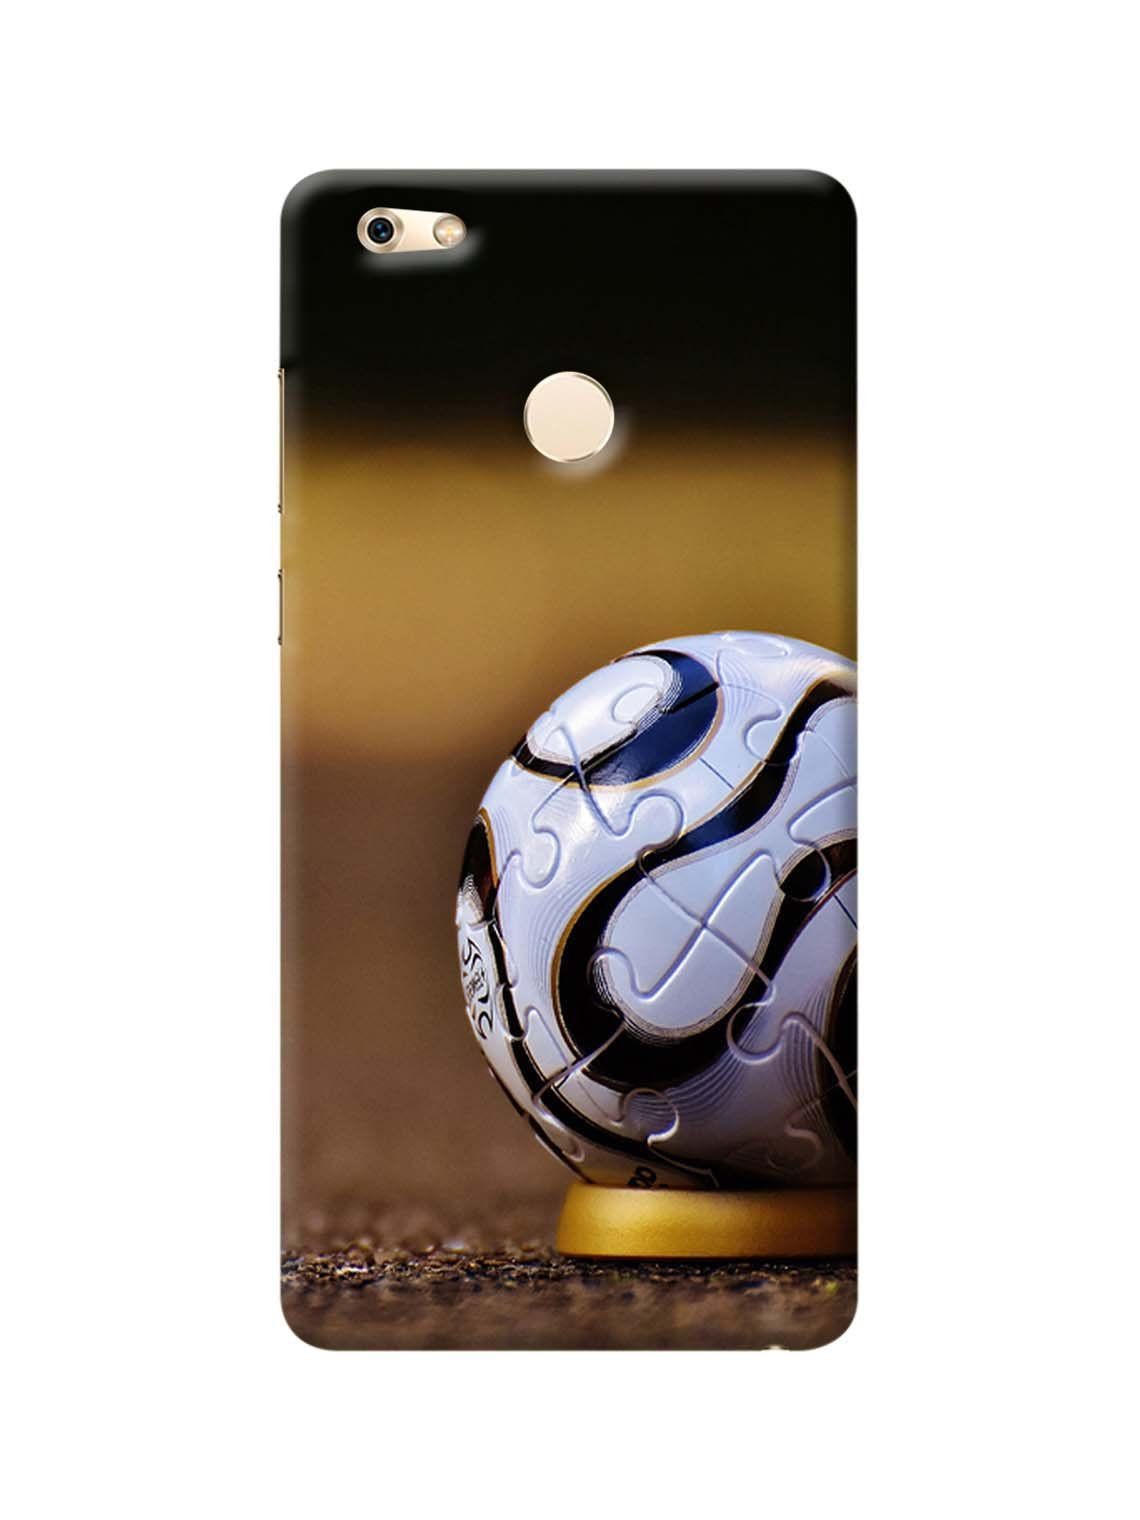 new product 2247e 40559 FootBall Printed Mobile Case For Gionee M7 Power